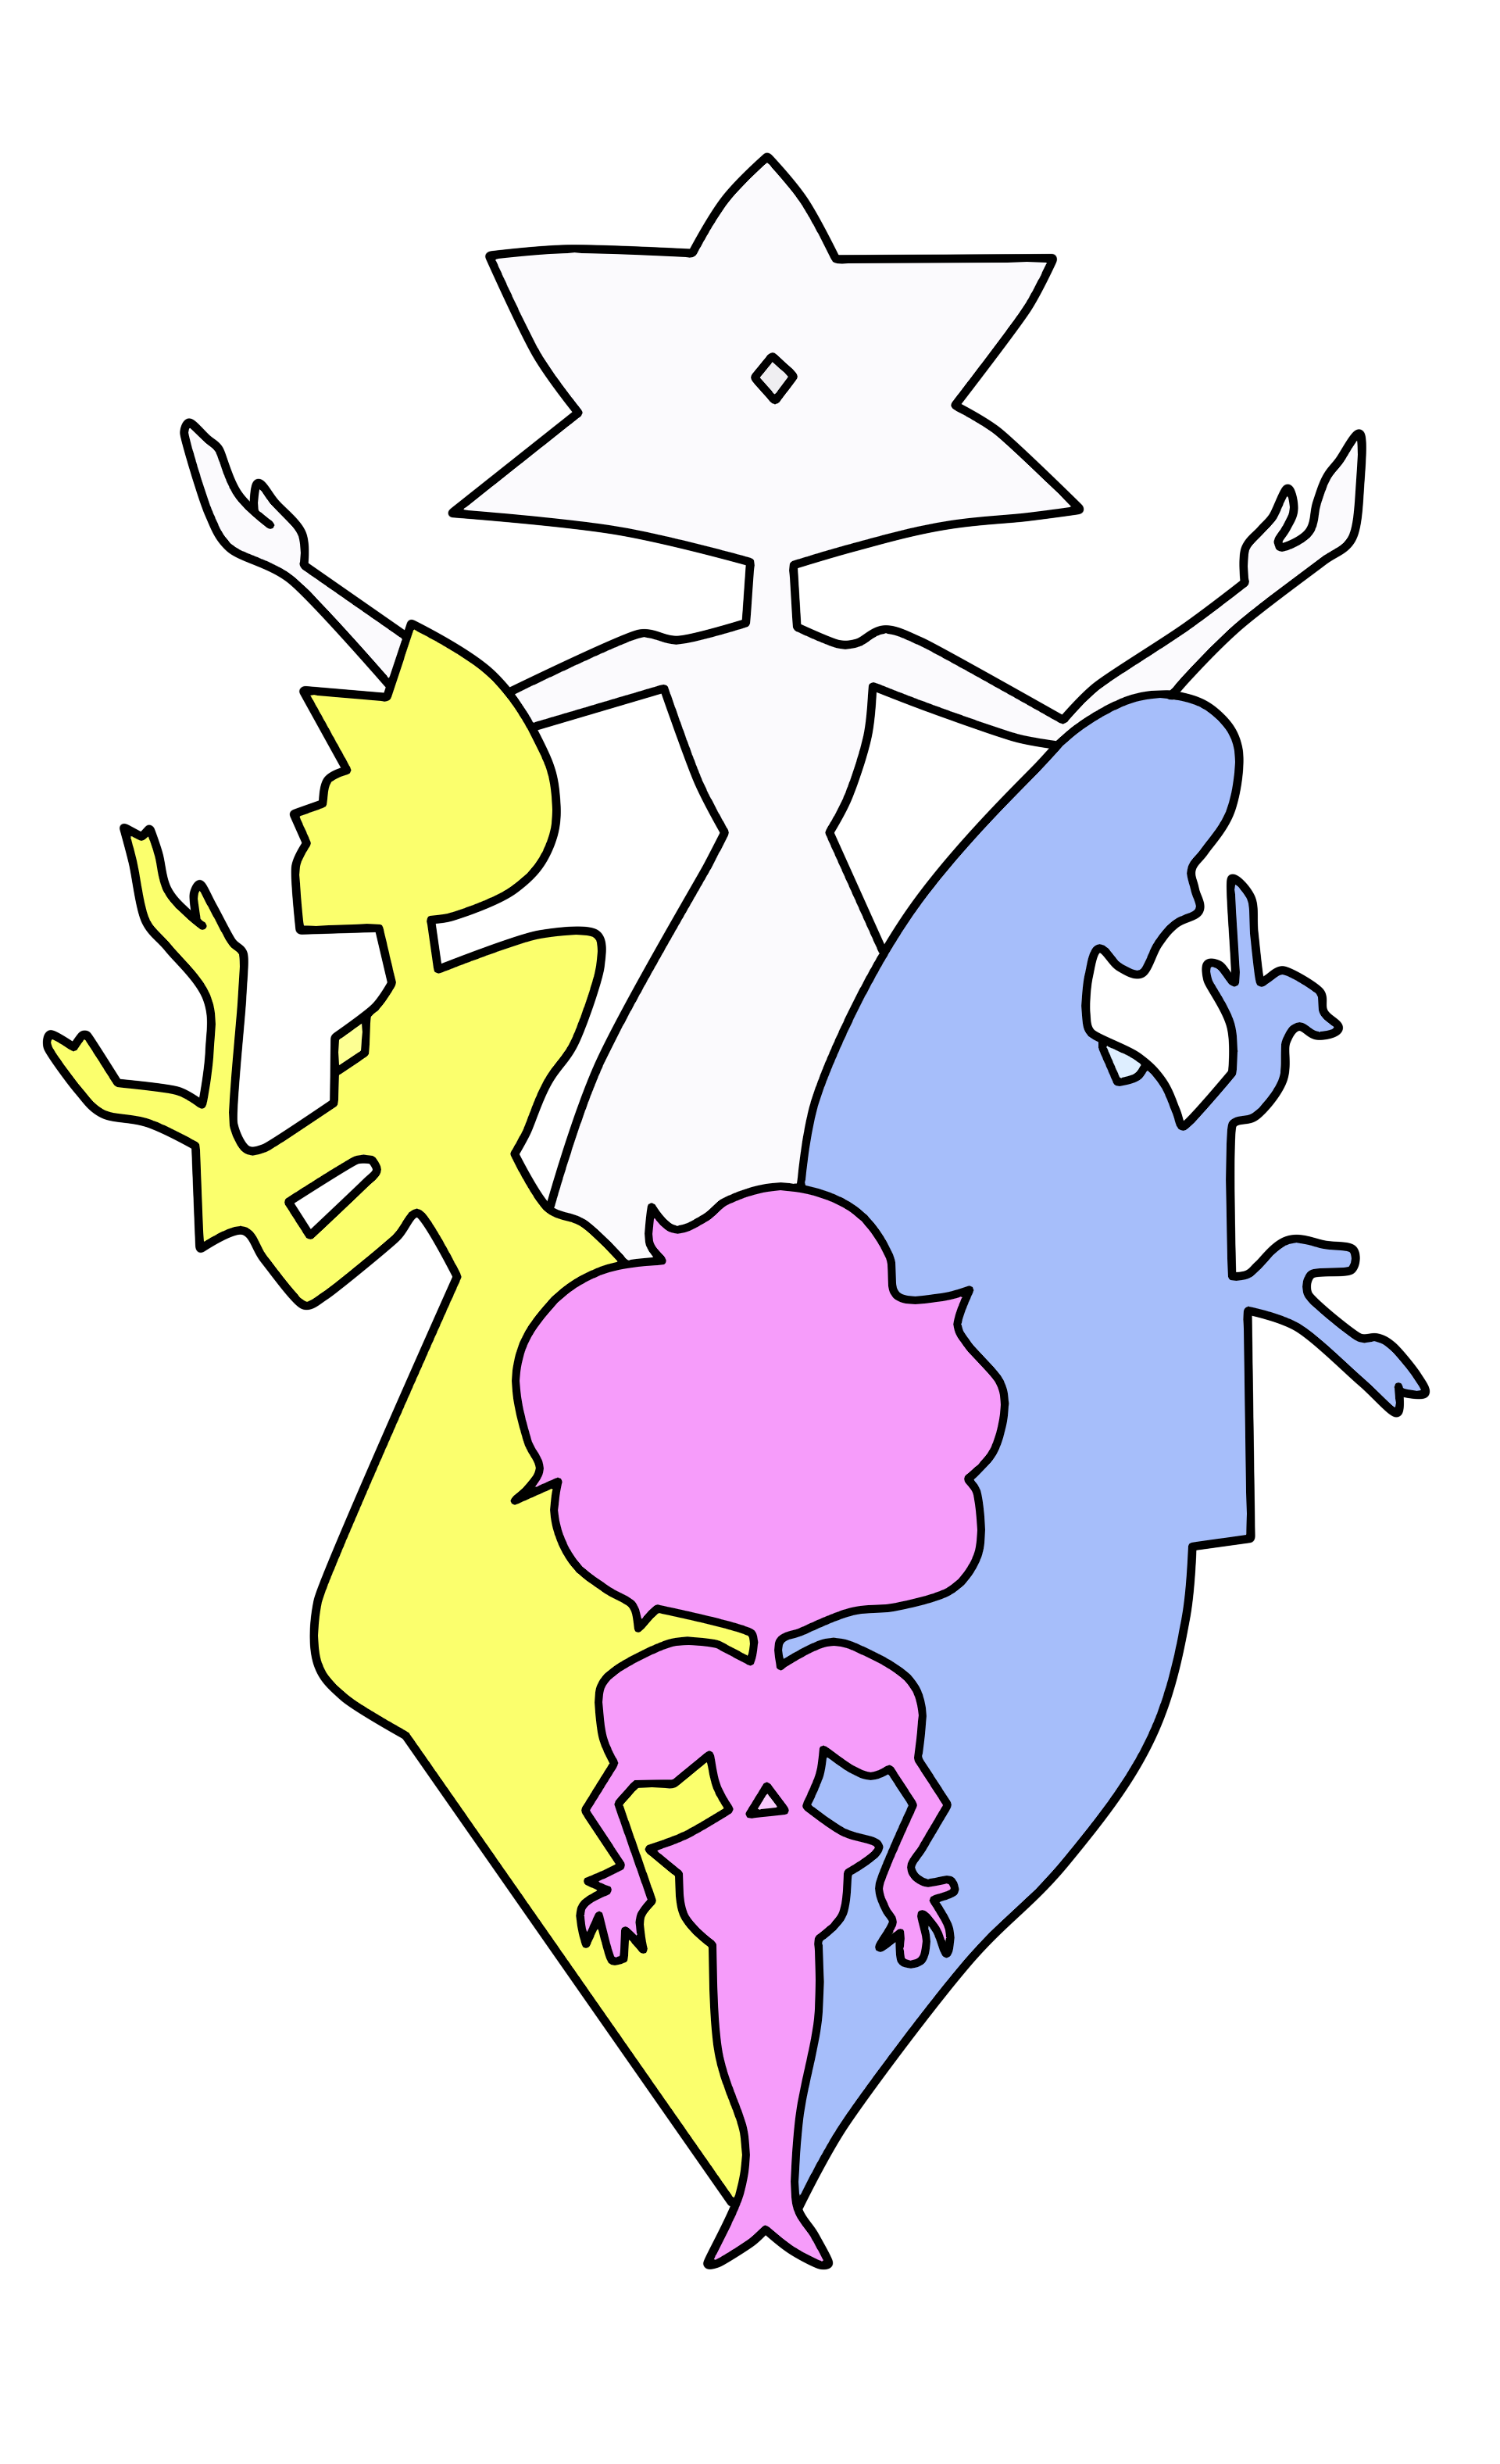 Latest drawing unique. The great diamond authority